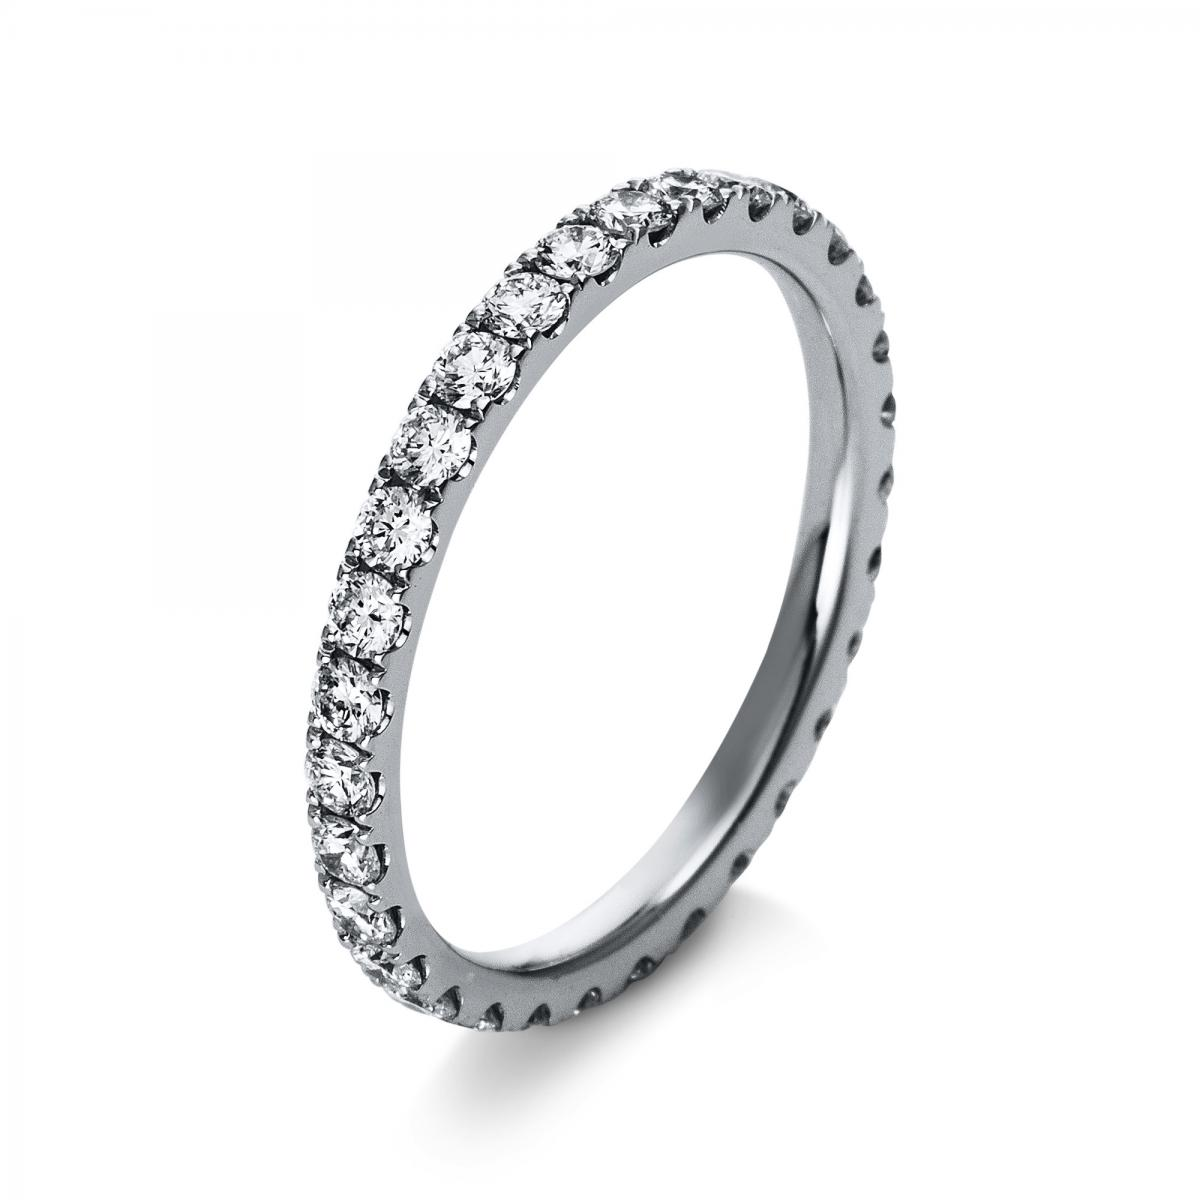 Ring 18 ct white gold with 31 brilliants ca. 0,91 ct, size 54